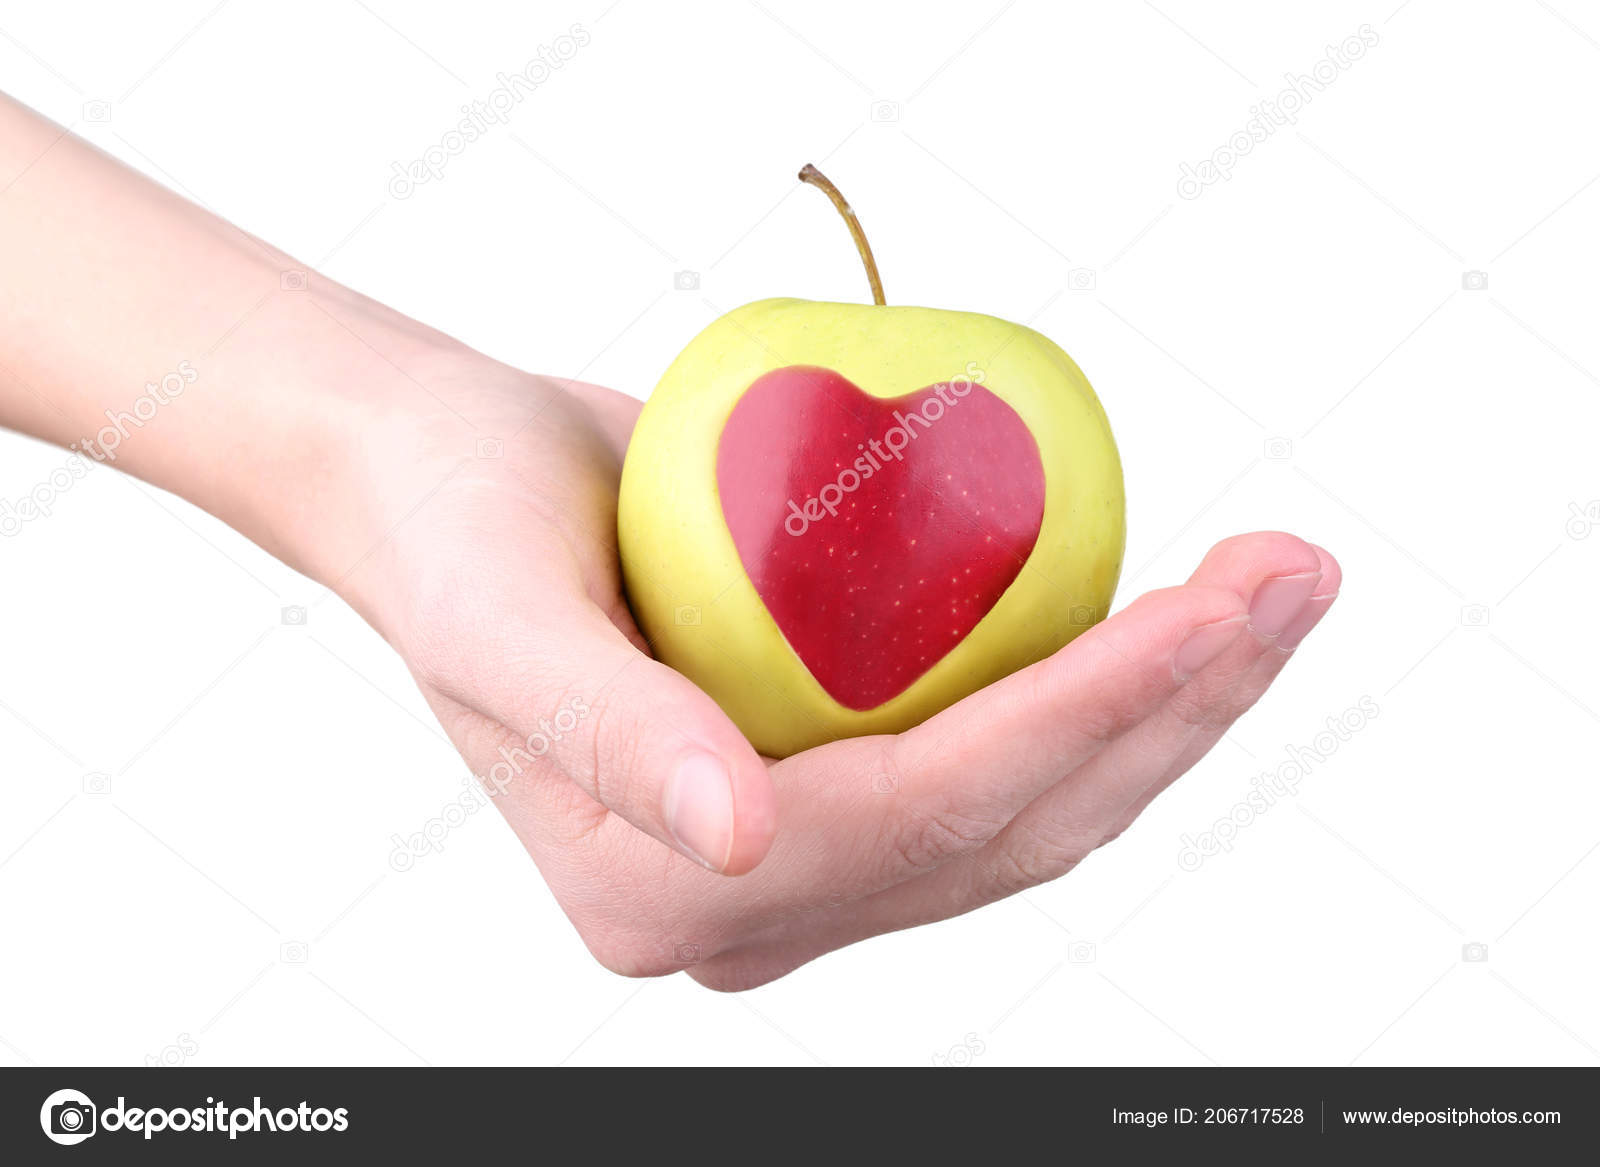 Female Hands Holding Apple Cutout Heart Shape White